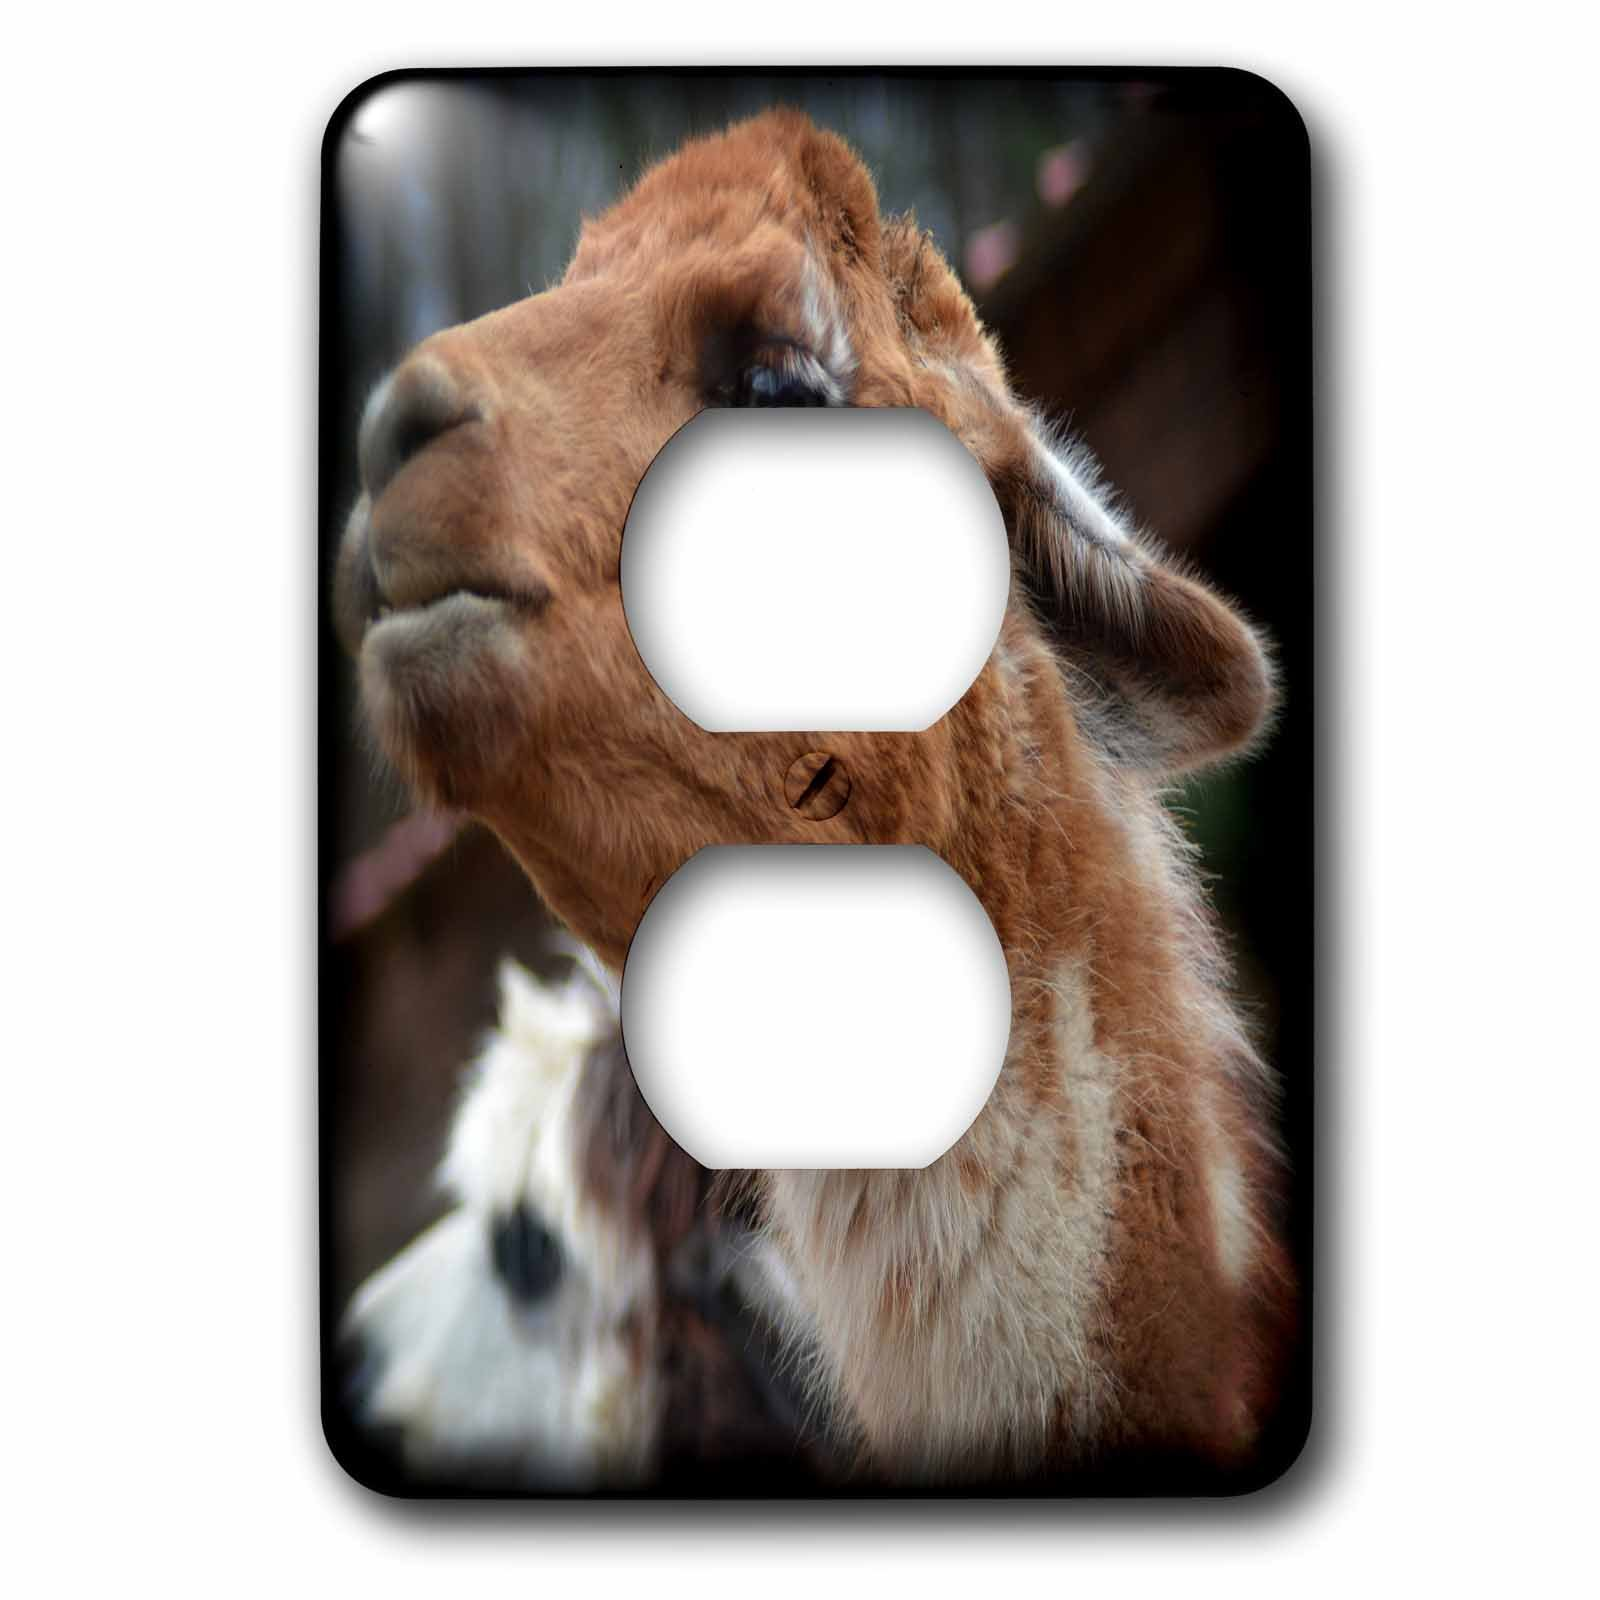 3dRose WhiteOaks Photography and Artwork - Lamas - Yes More Please is a lama wanting to be fed more food - Light Switch Covers - 2 plug outlet cover (lsp_265349_6)